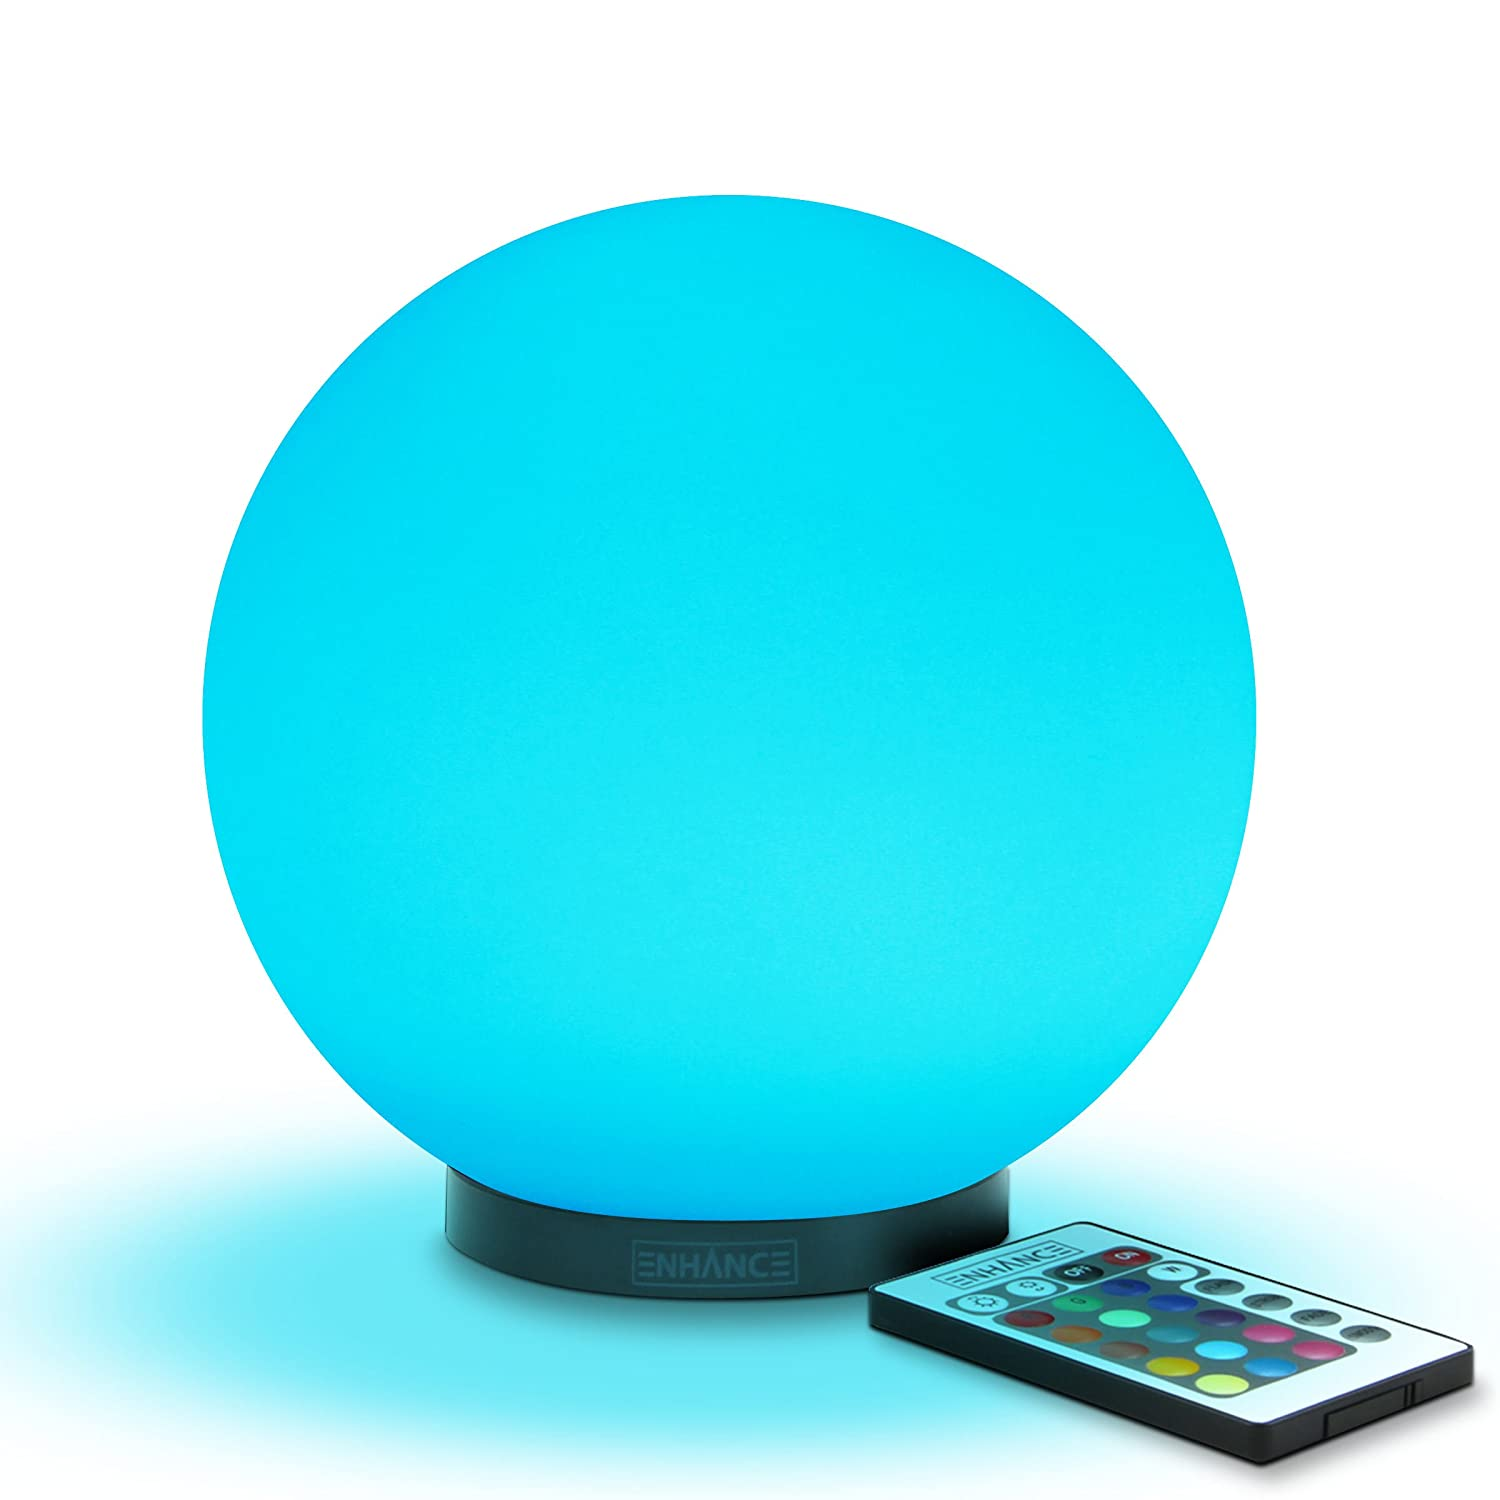 Kid's LED Globe Night Light Ambient Color Changing Glass Mood Lamp 5.9 inch by ENHANCE - Wireless Remote Control, 4 Lighting Modes & Battery or AC Adapter Power - Great for Children & Babies ENMDLM0100BKUS